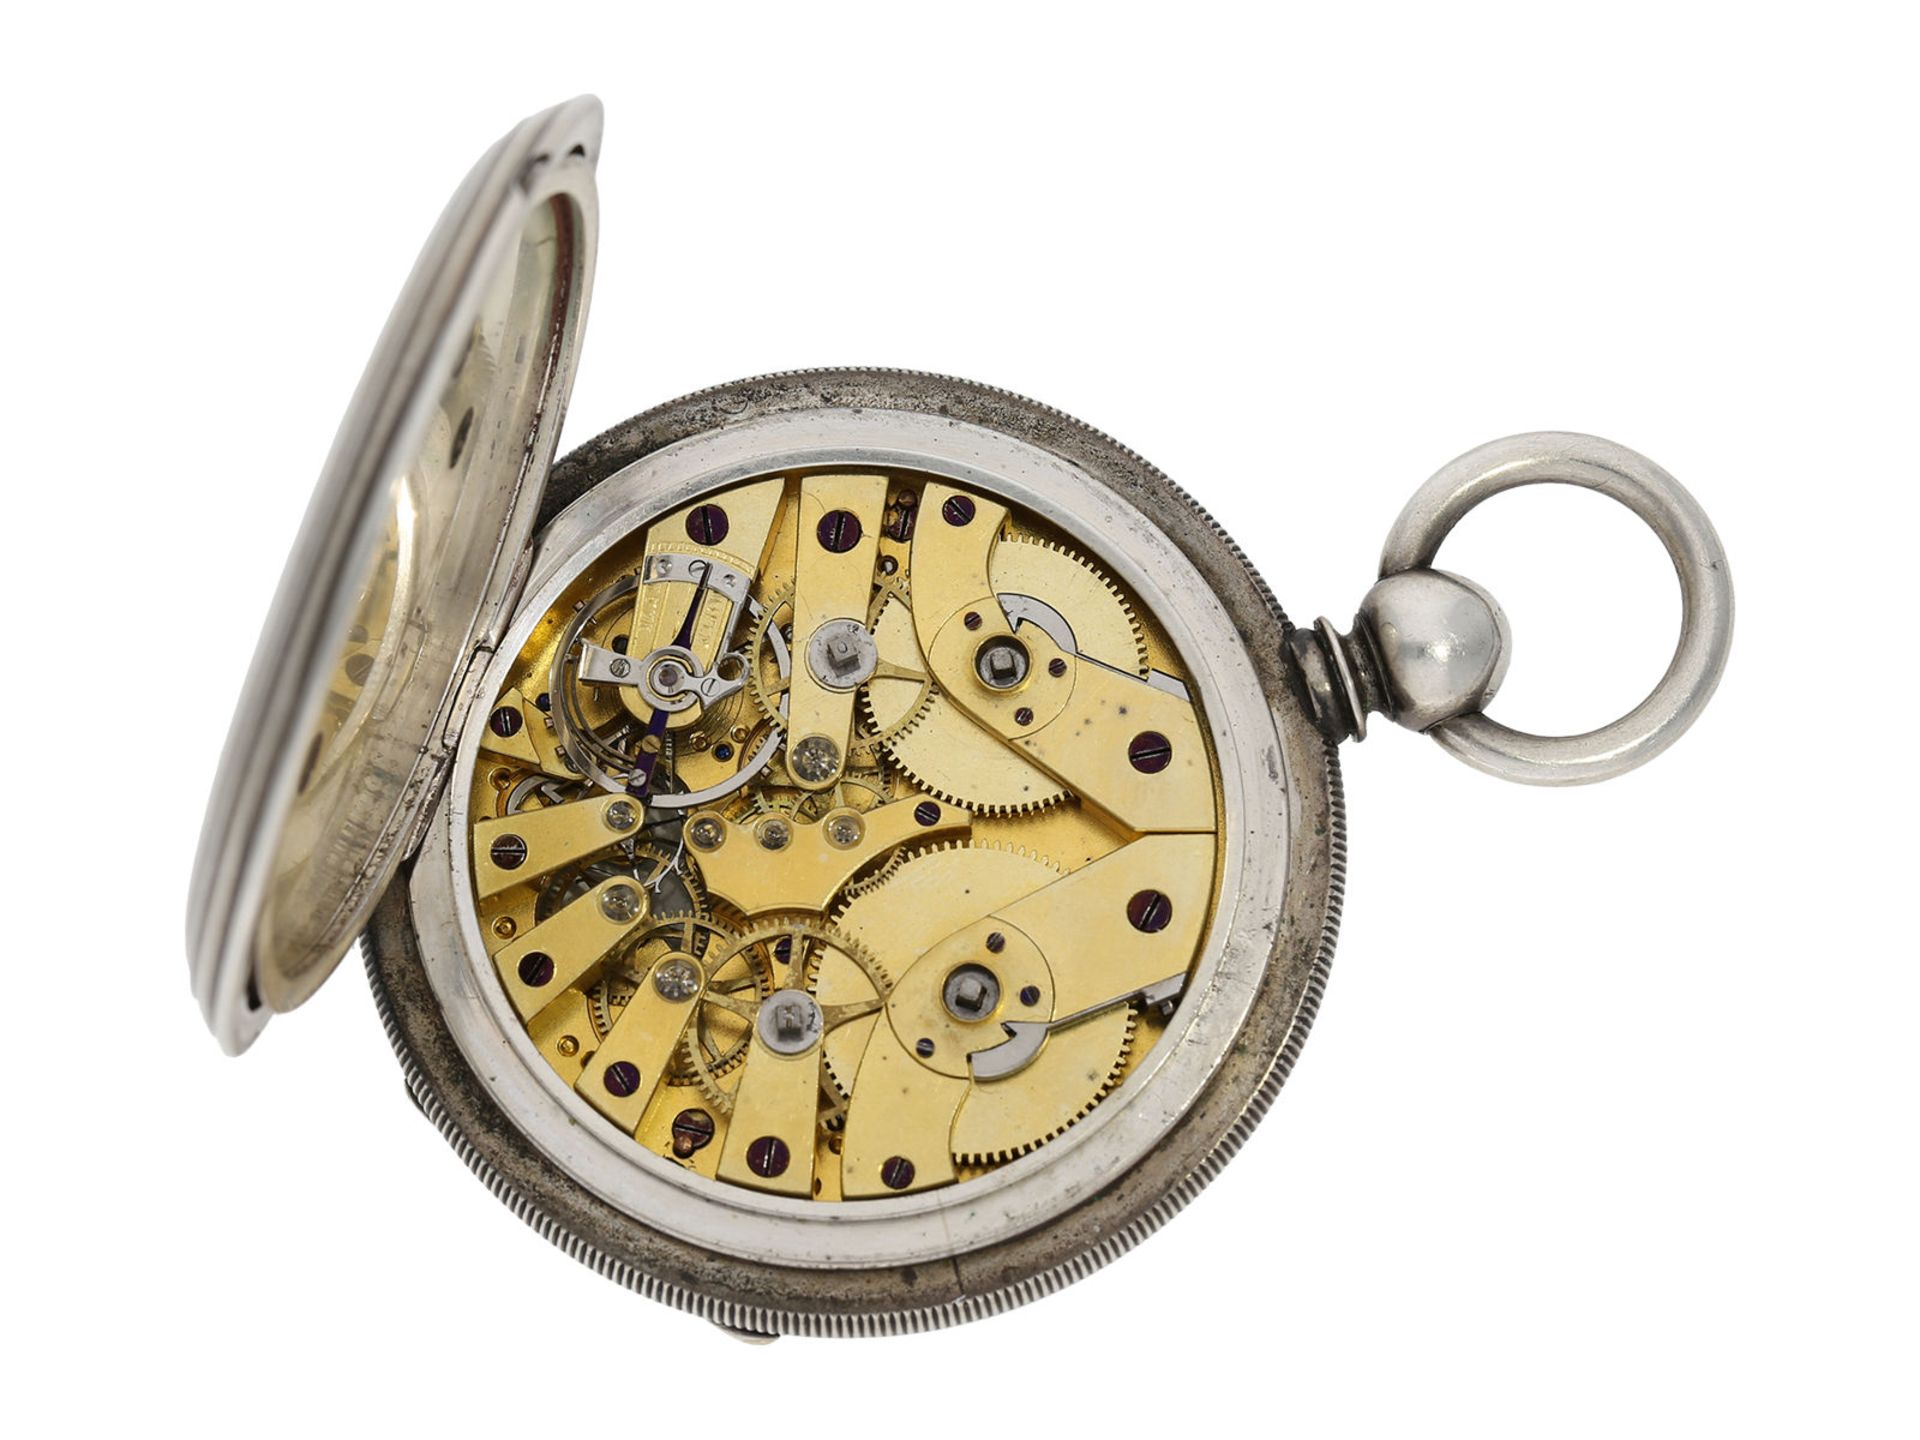 Pocket watch: early deck watch with 2 time zones and independent, stoppable centre seconds, signed - Bild 2 aus 5